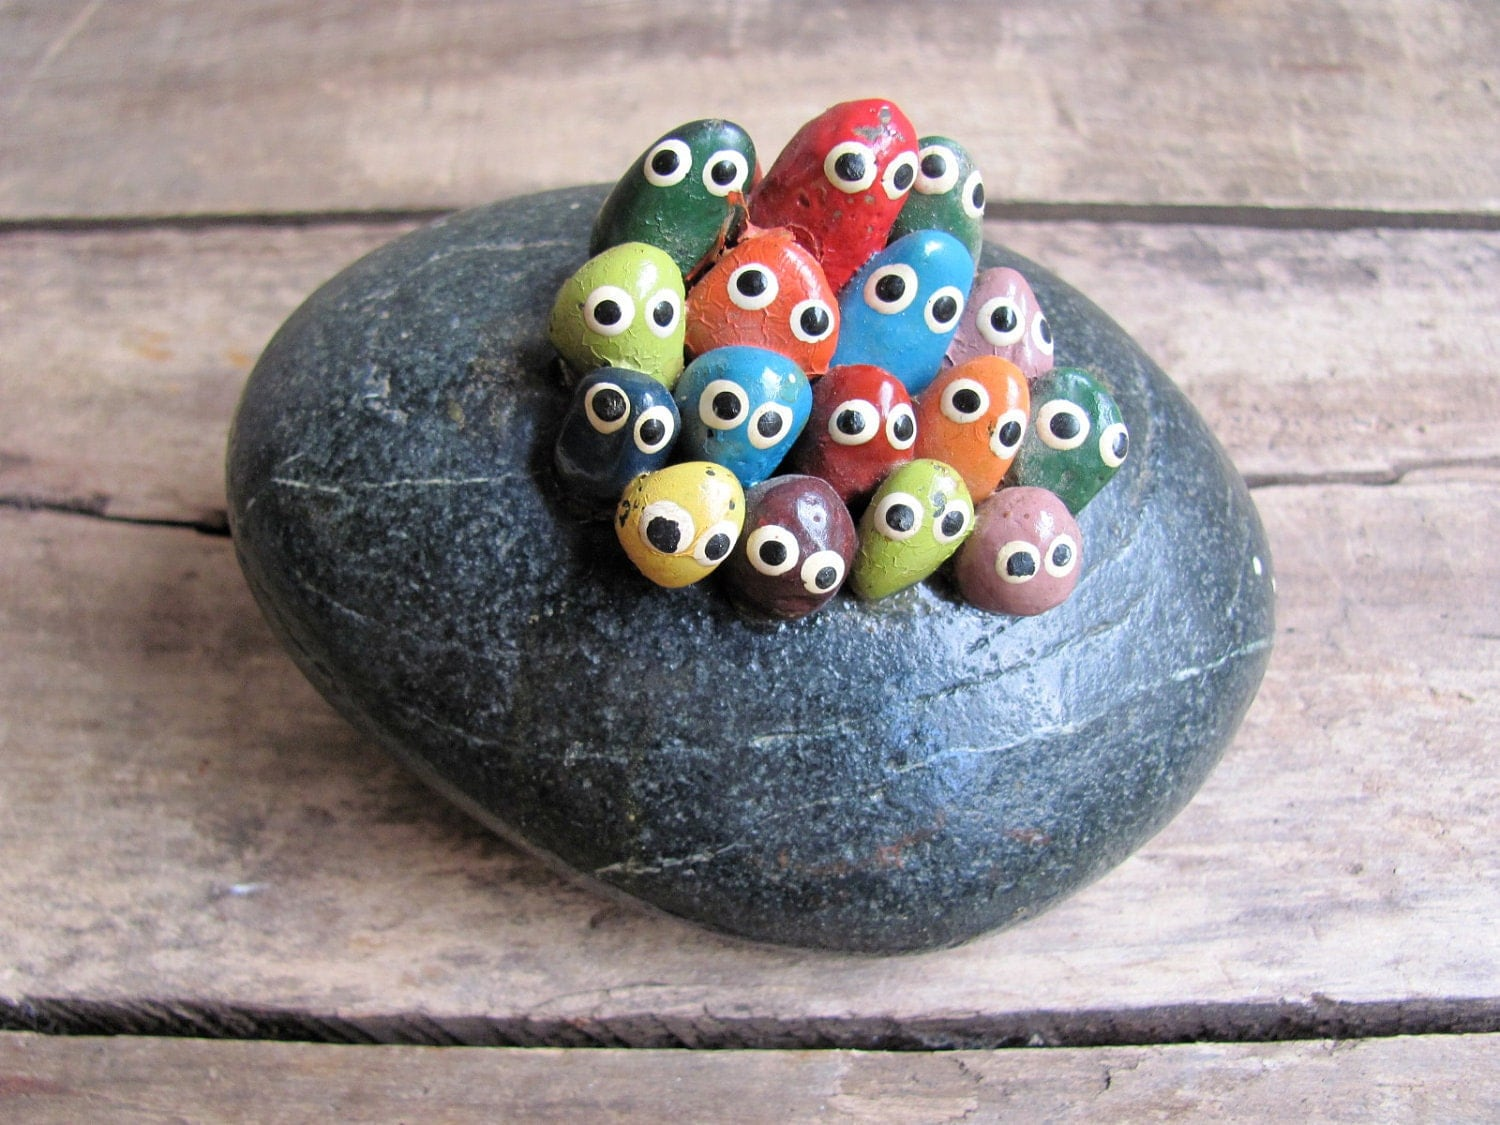 rock crafts ideas vintage 1970s souvenir pet rocks 2845